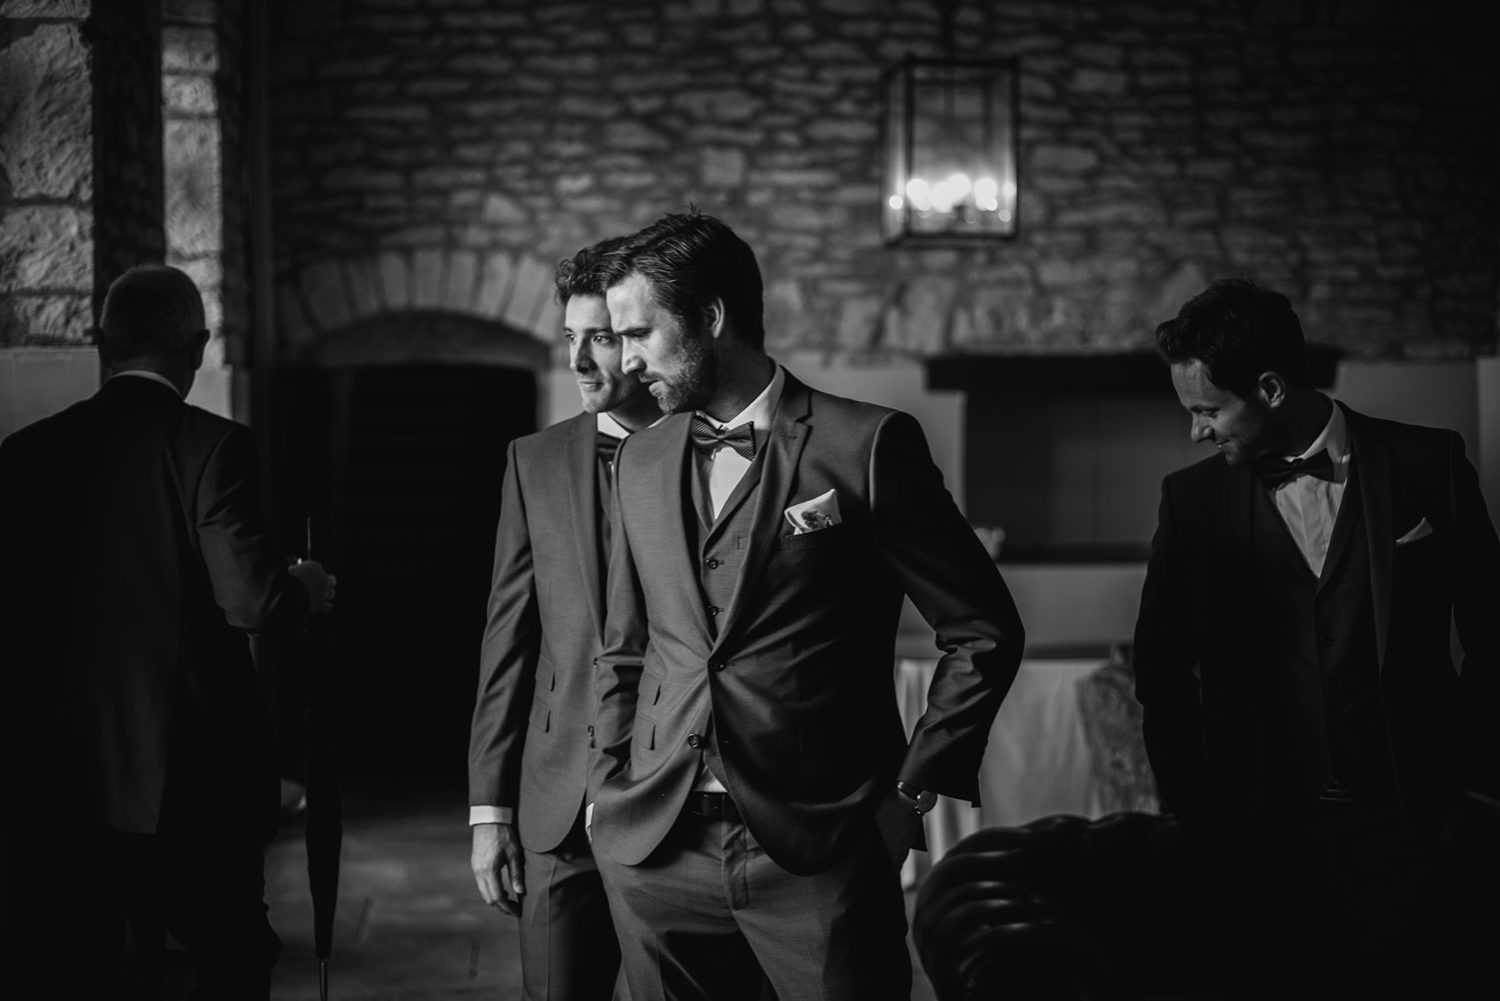 Brympton-House-Wedding-Photographer-037.jpg